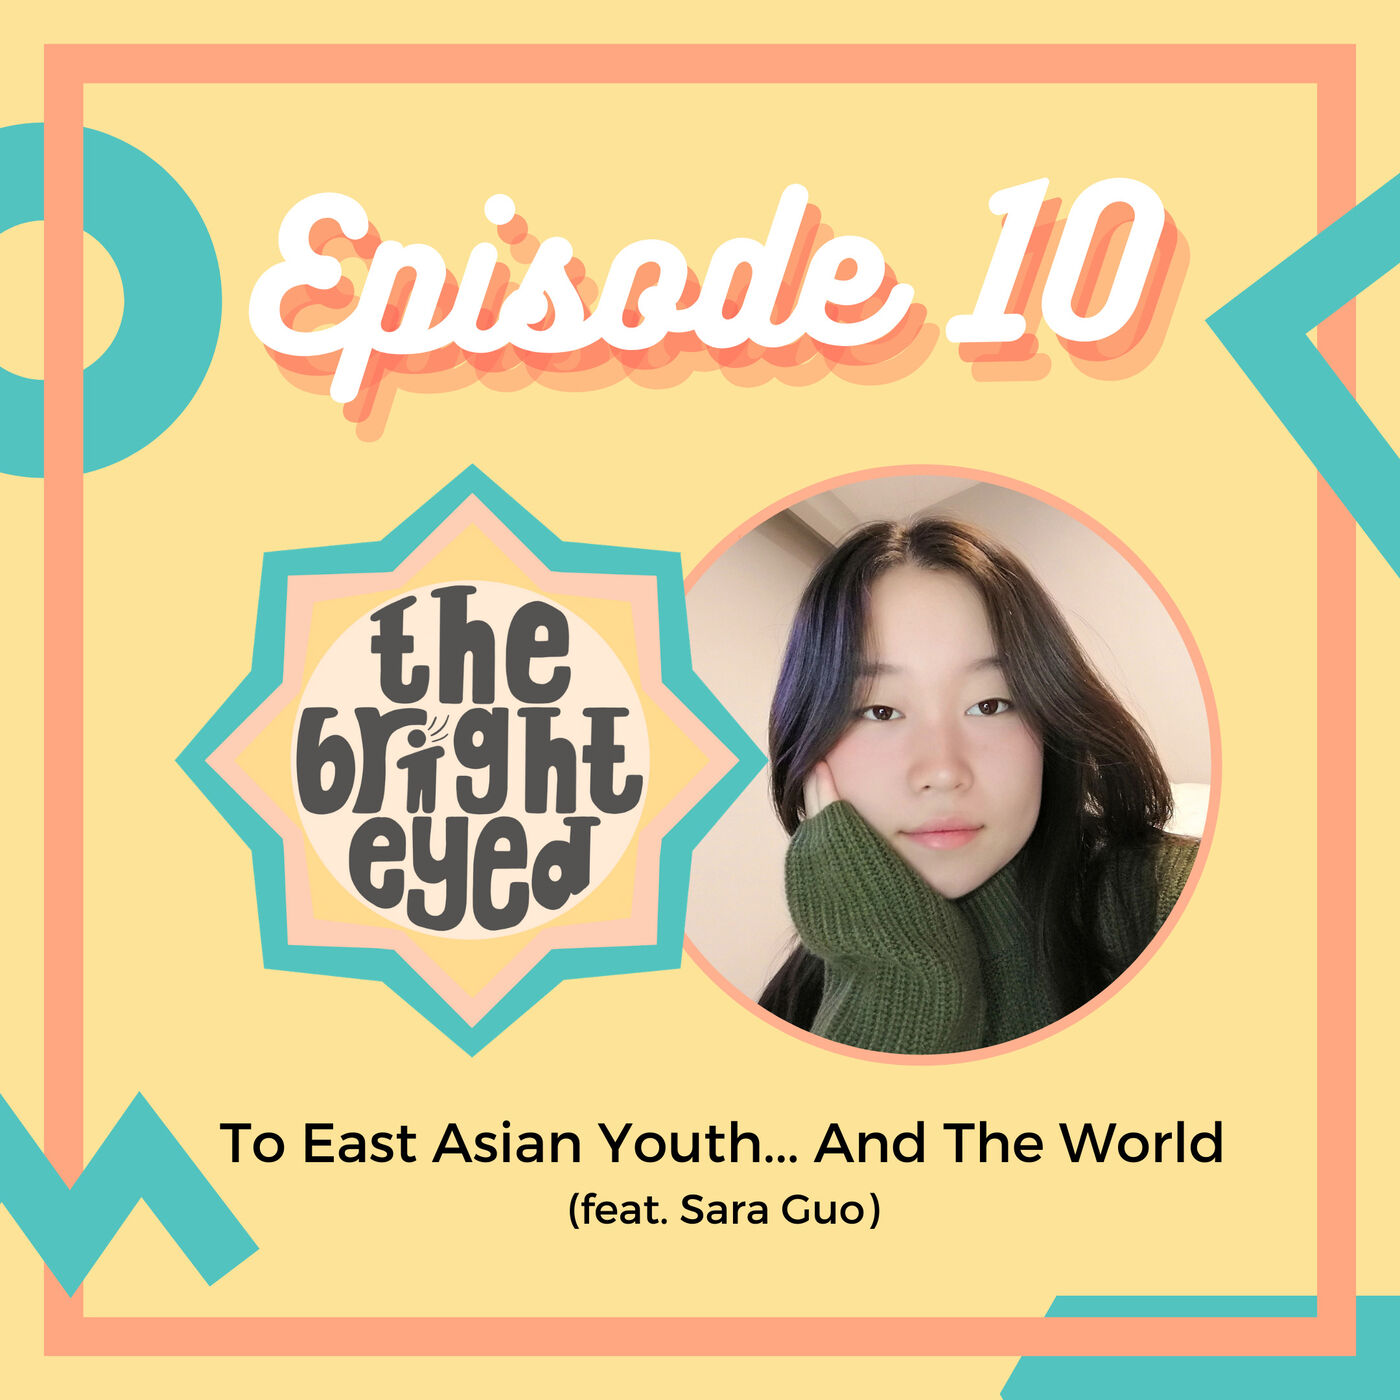 To East Asian Youth... And The World (feat. Sara Guo)